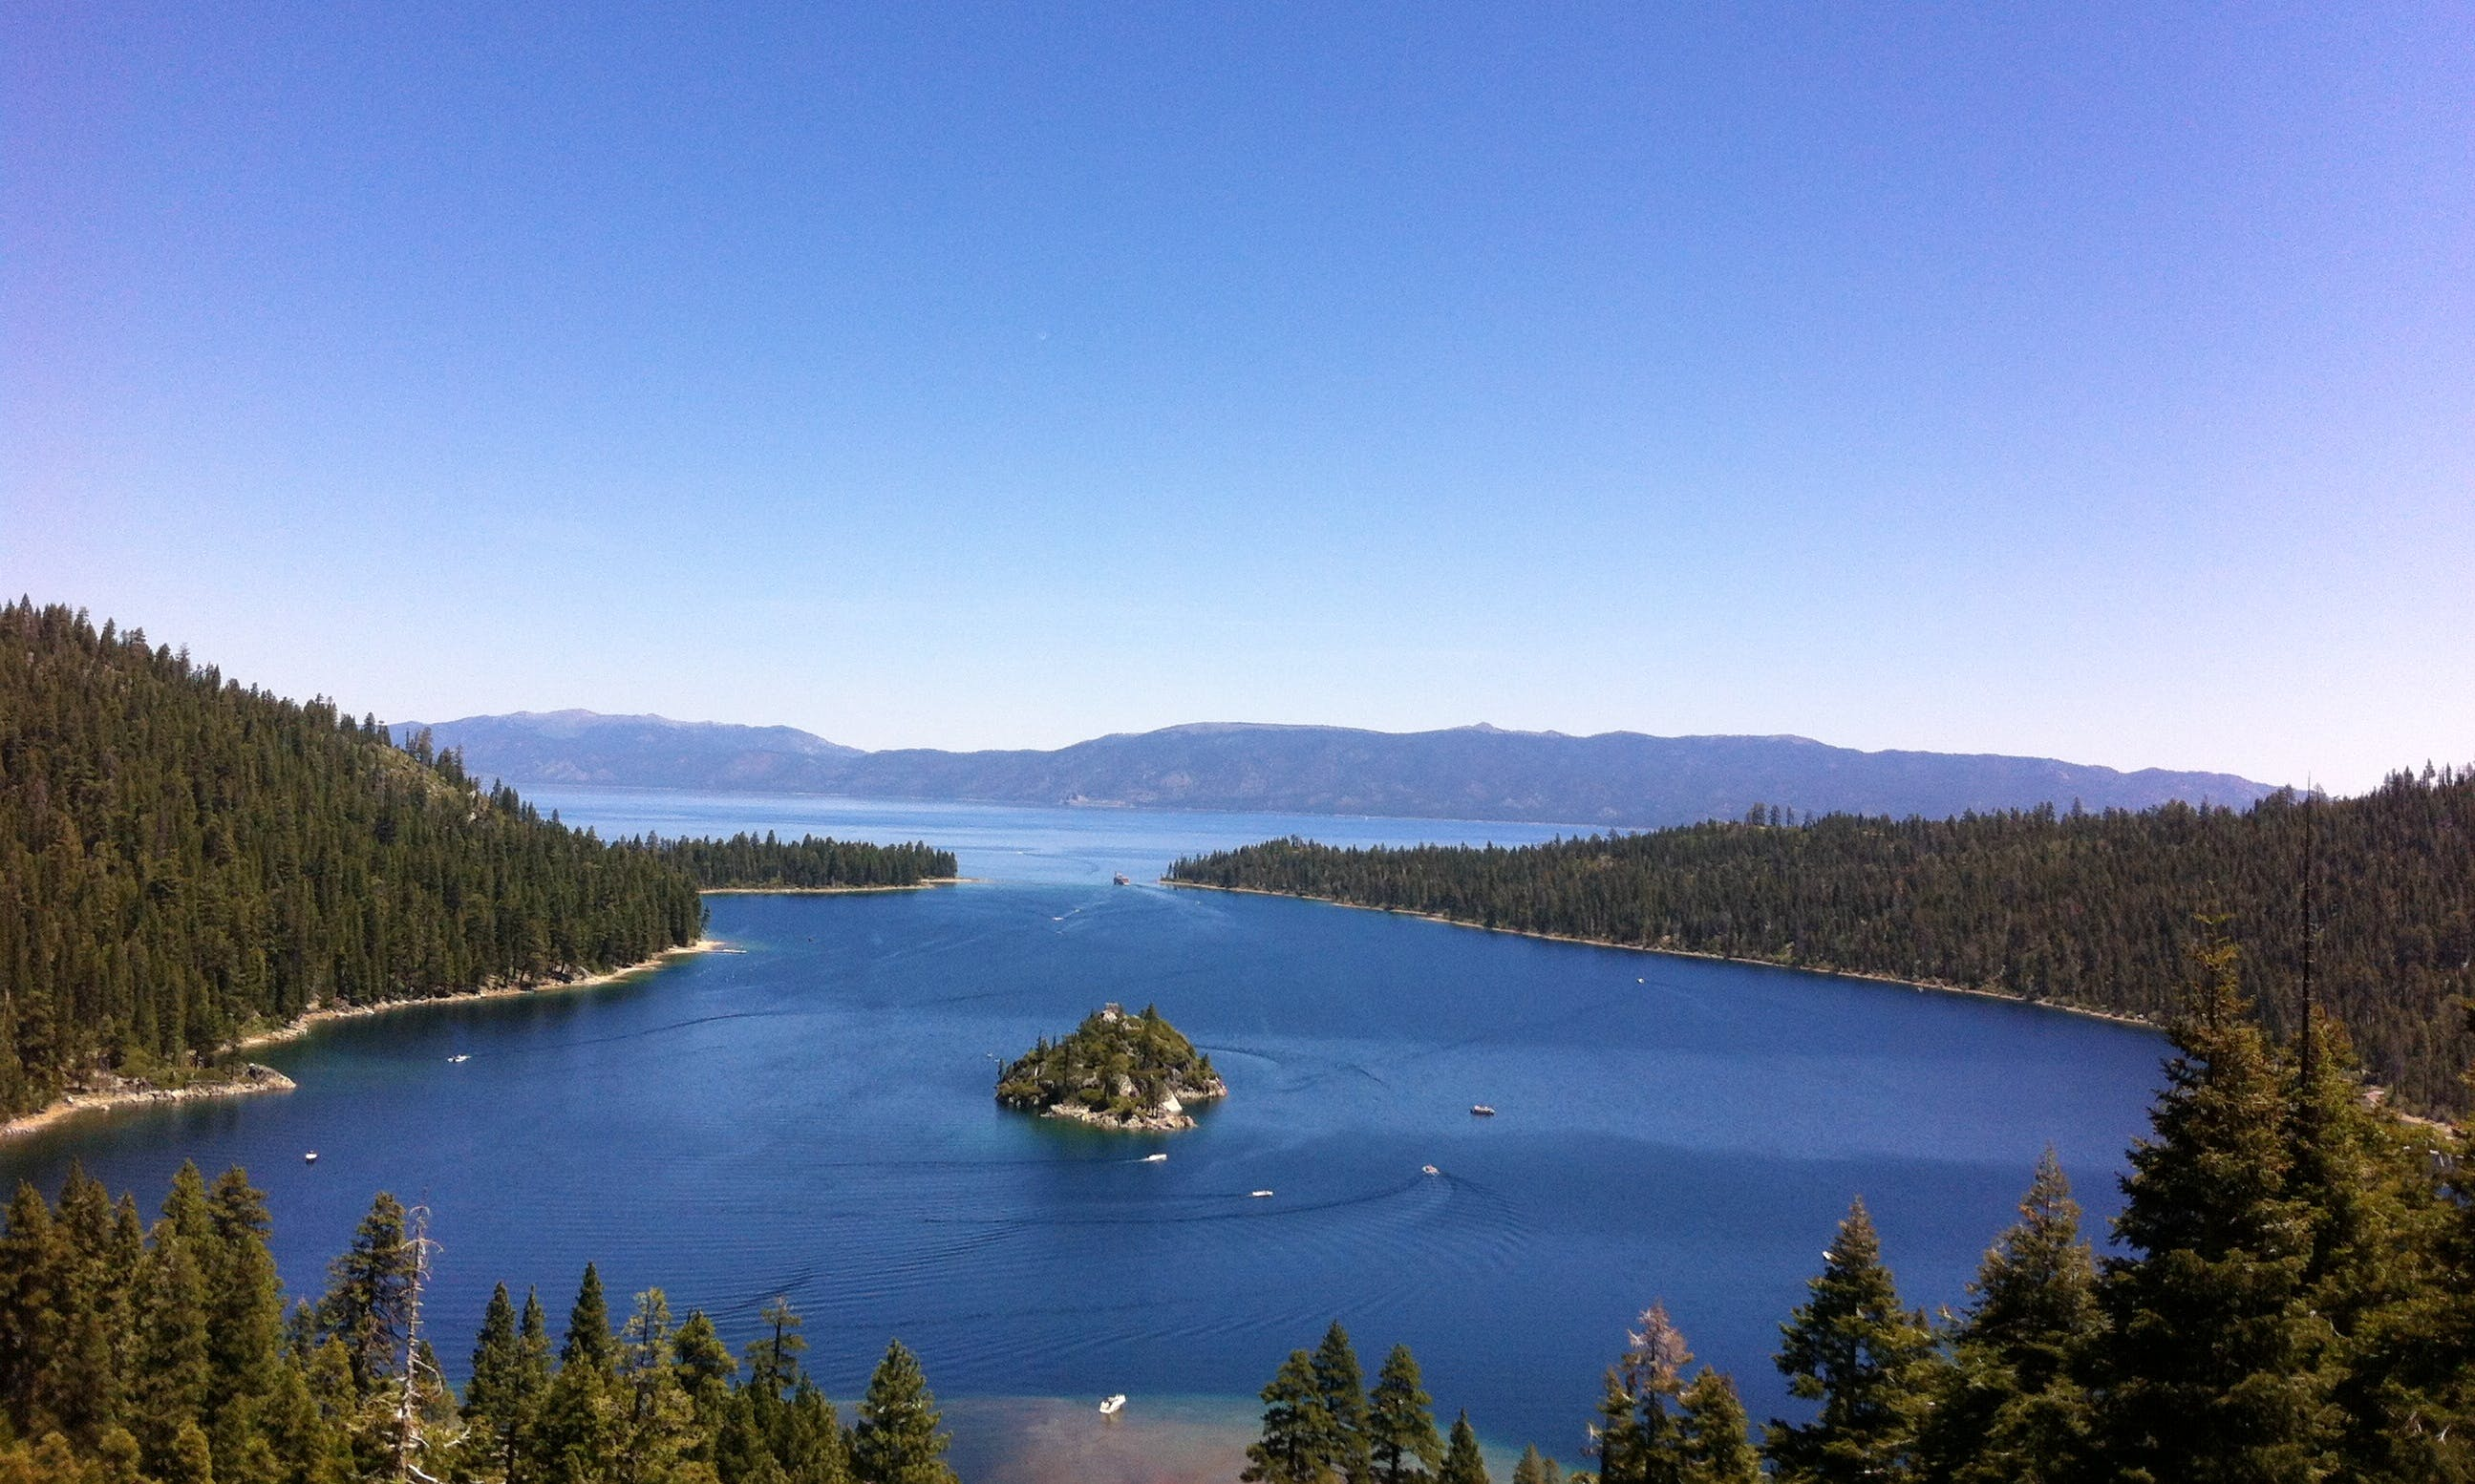 Rent a 28' Bowrider in South Lake Tahoe, California for 9 friends!